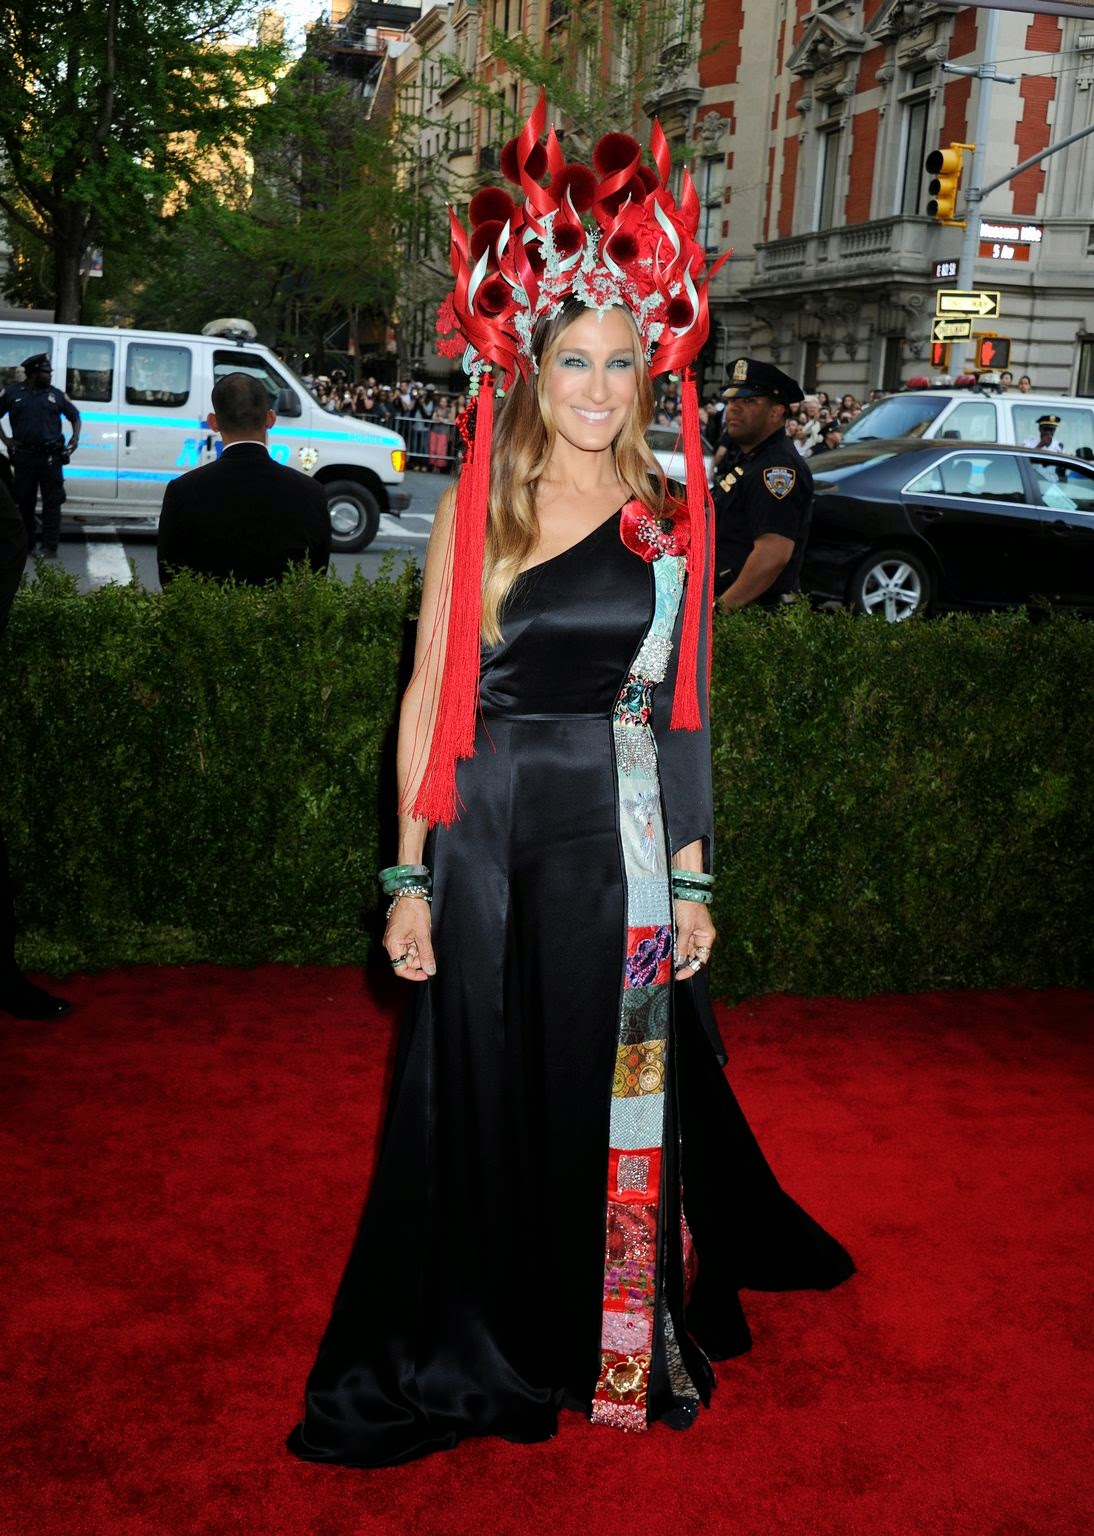 Sarah Jessica Parker wears H&M to the 2015 Met Gala in NYC